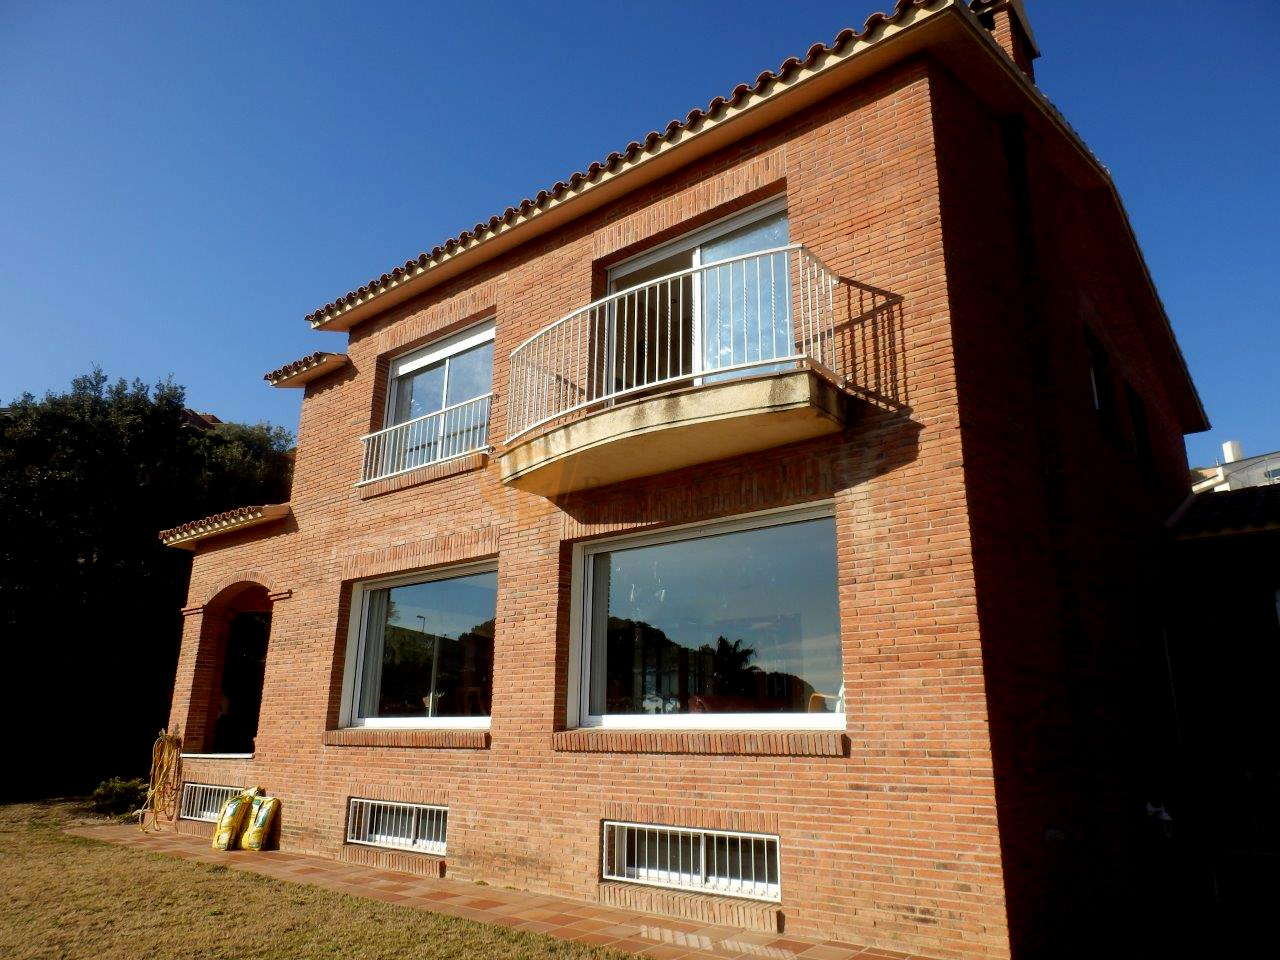 Casa en Teià. Zona residencial | House in Teià. Residential area